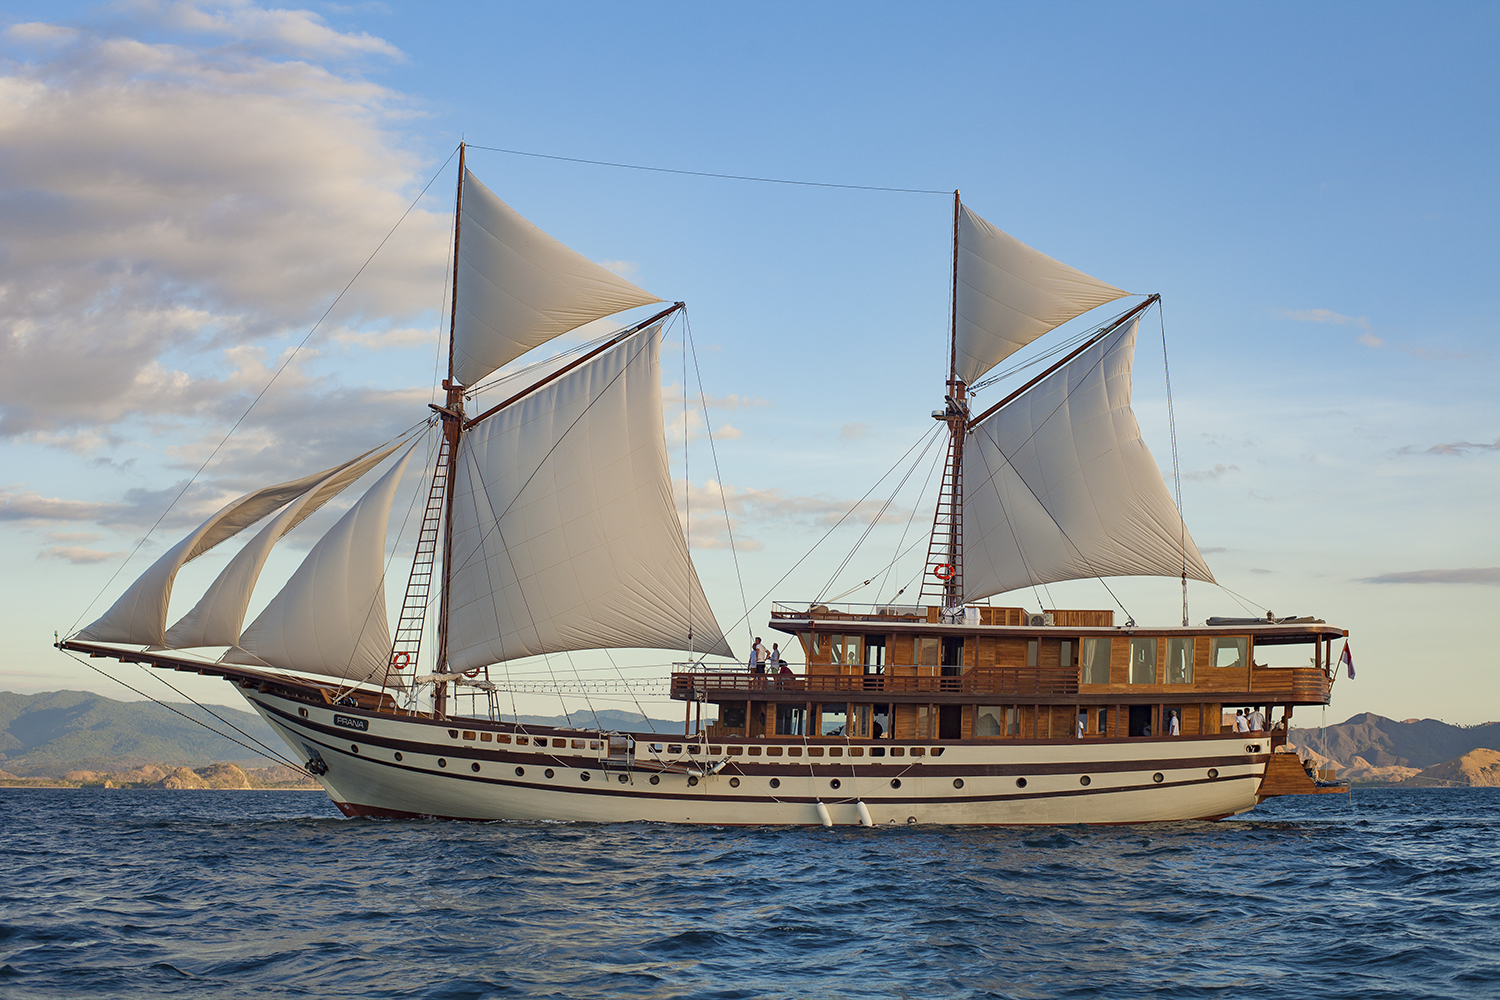 PHINISI YACHT